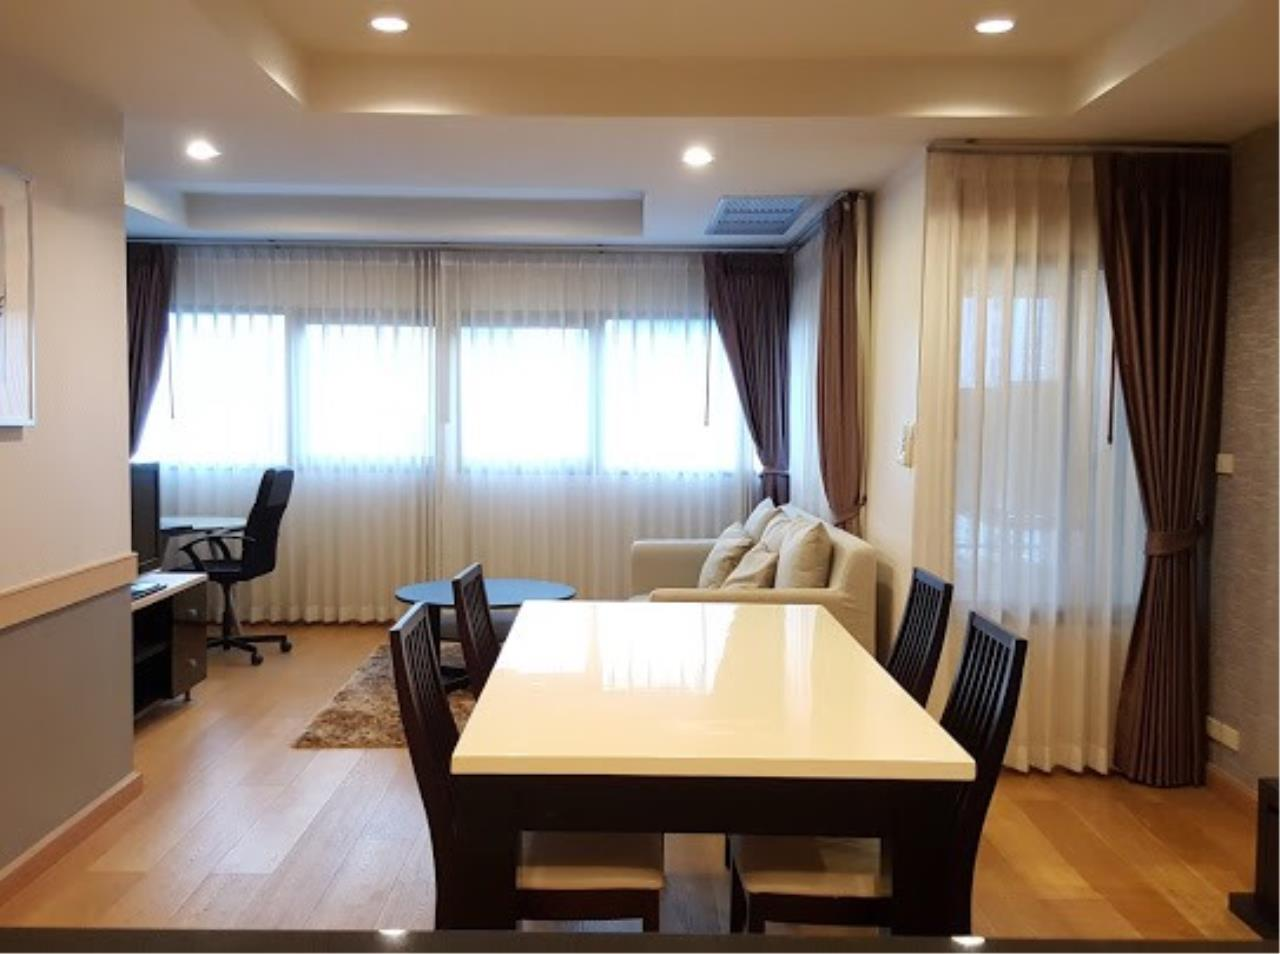 RE/MAX All Star Realty Agency's Sathorn Gardens for rent (MRT Lumpini) 1